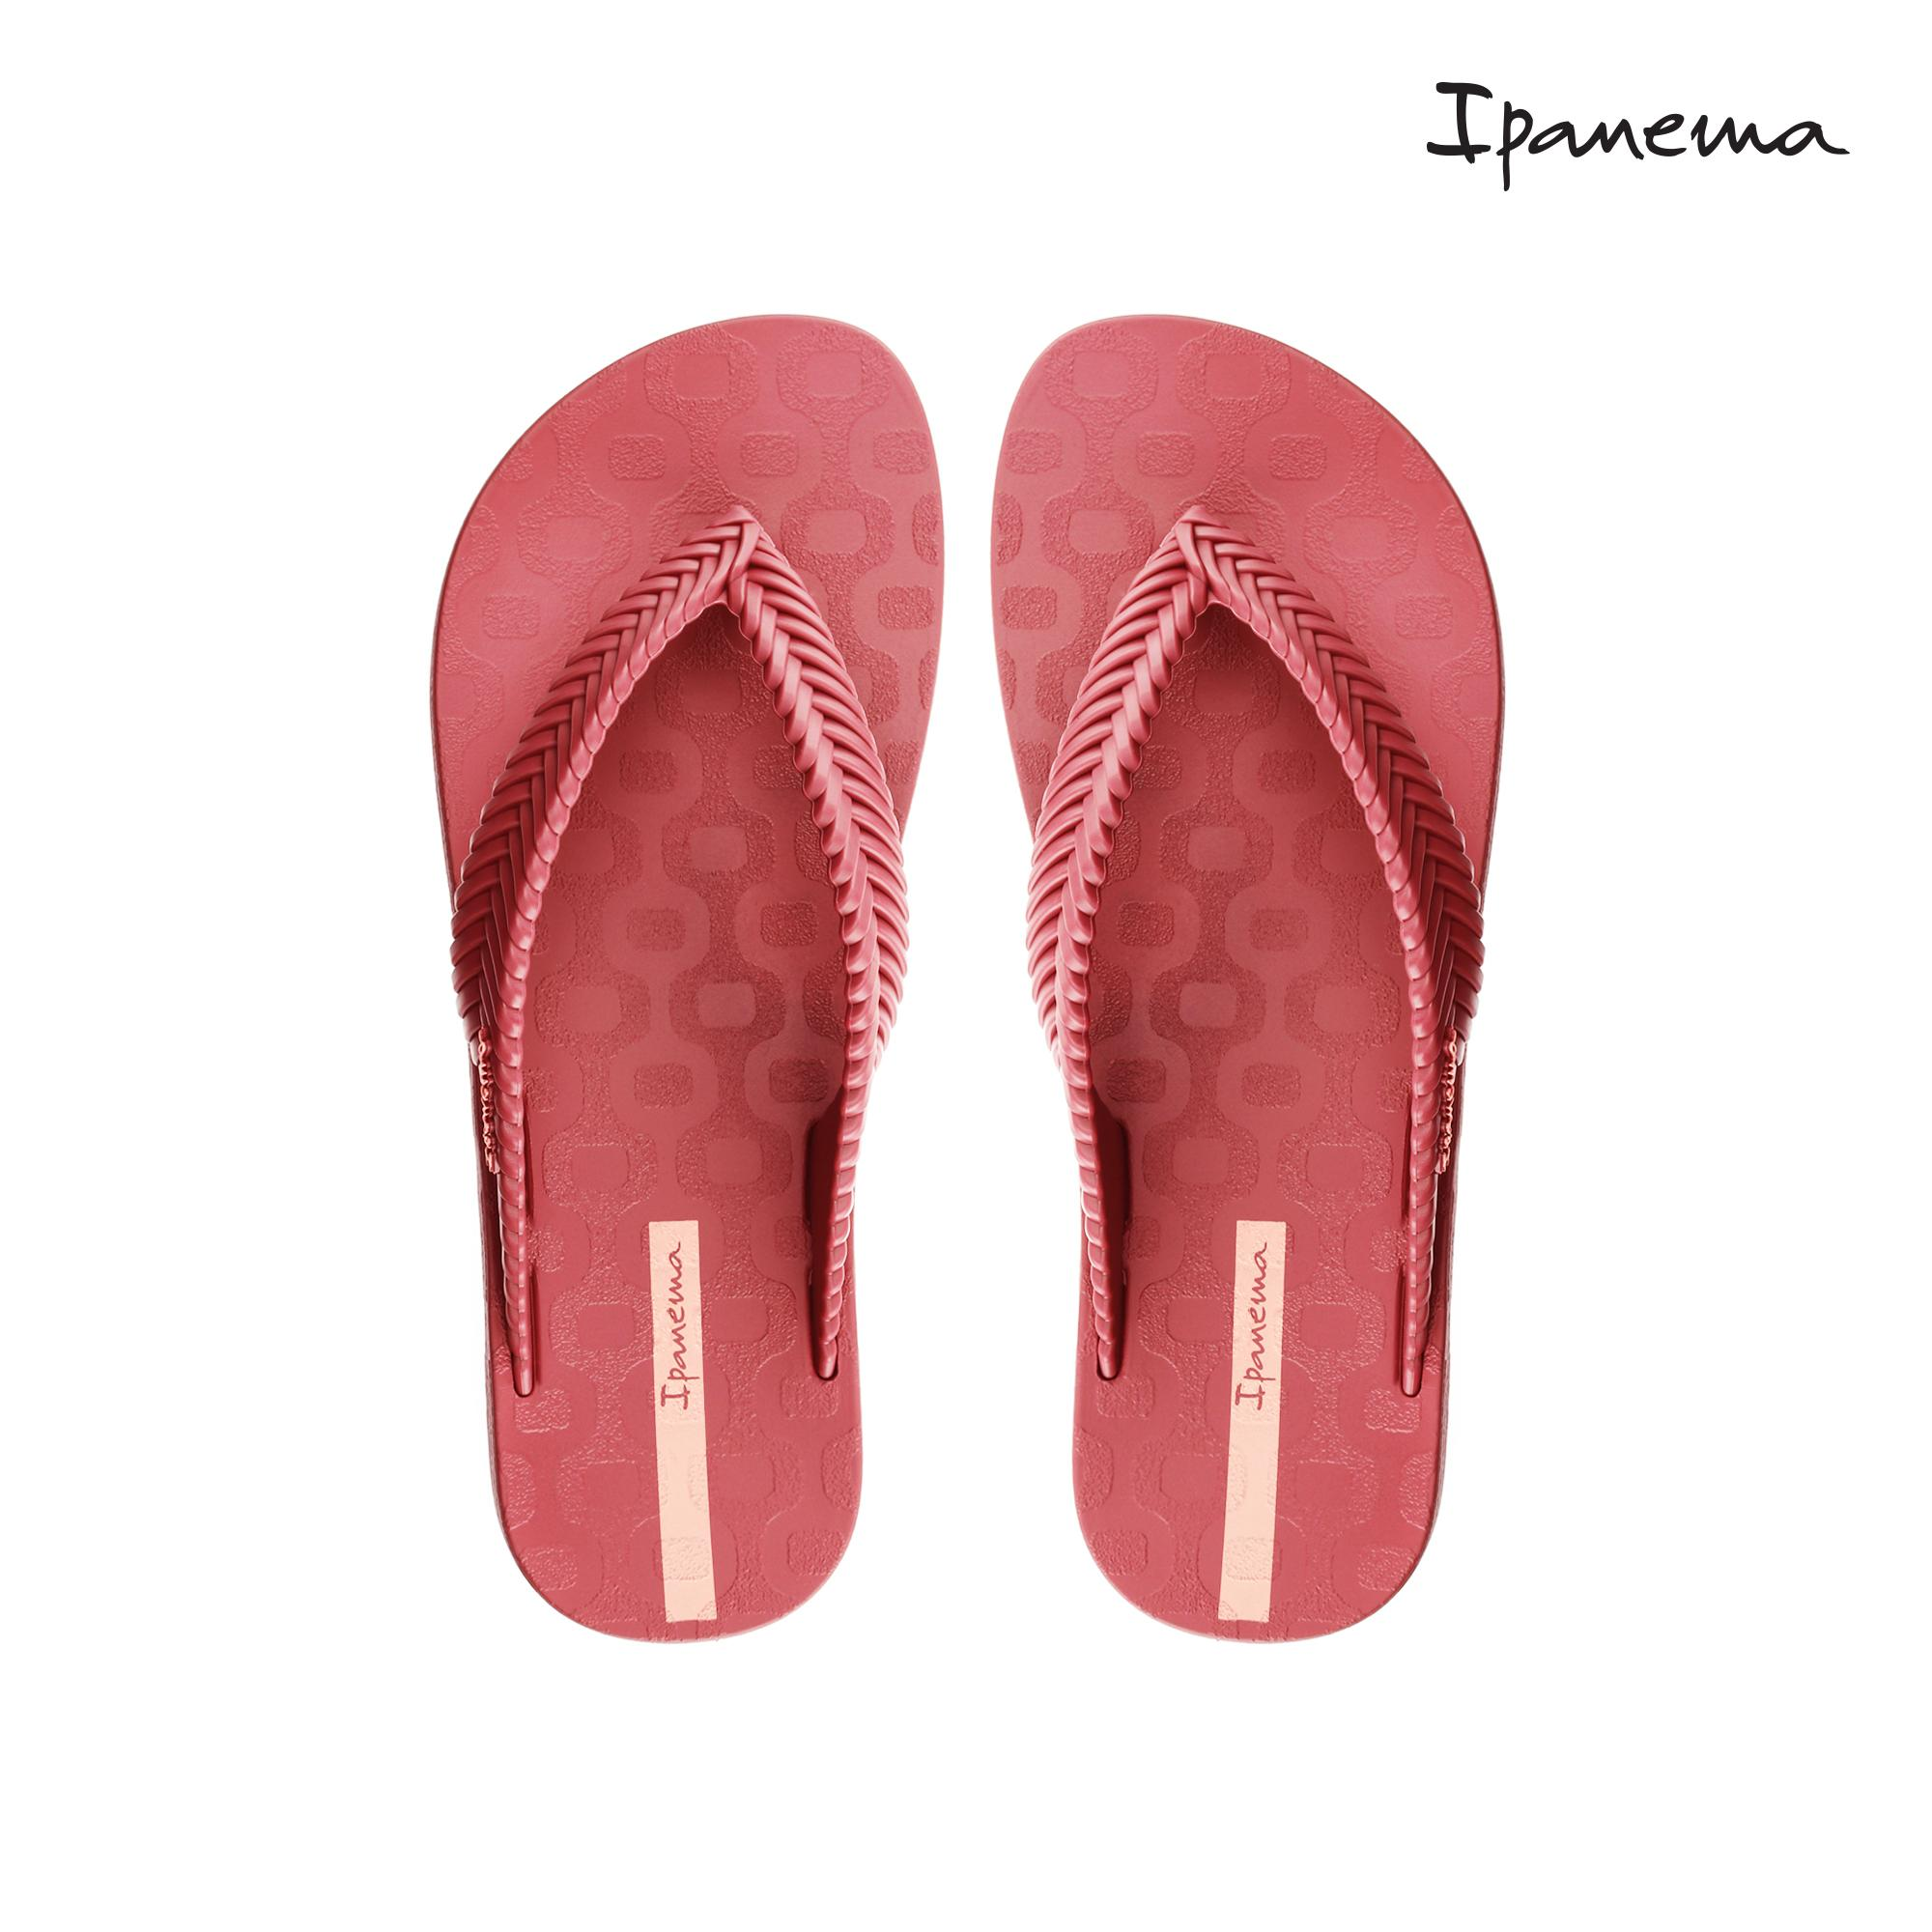 399eb129c3025 Ipanema Philippines  Ipanema price list - Ipanema Flip Flop ...